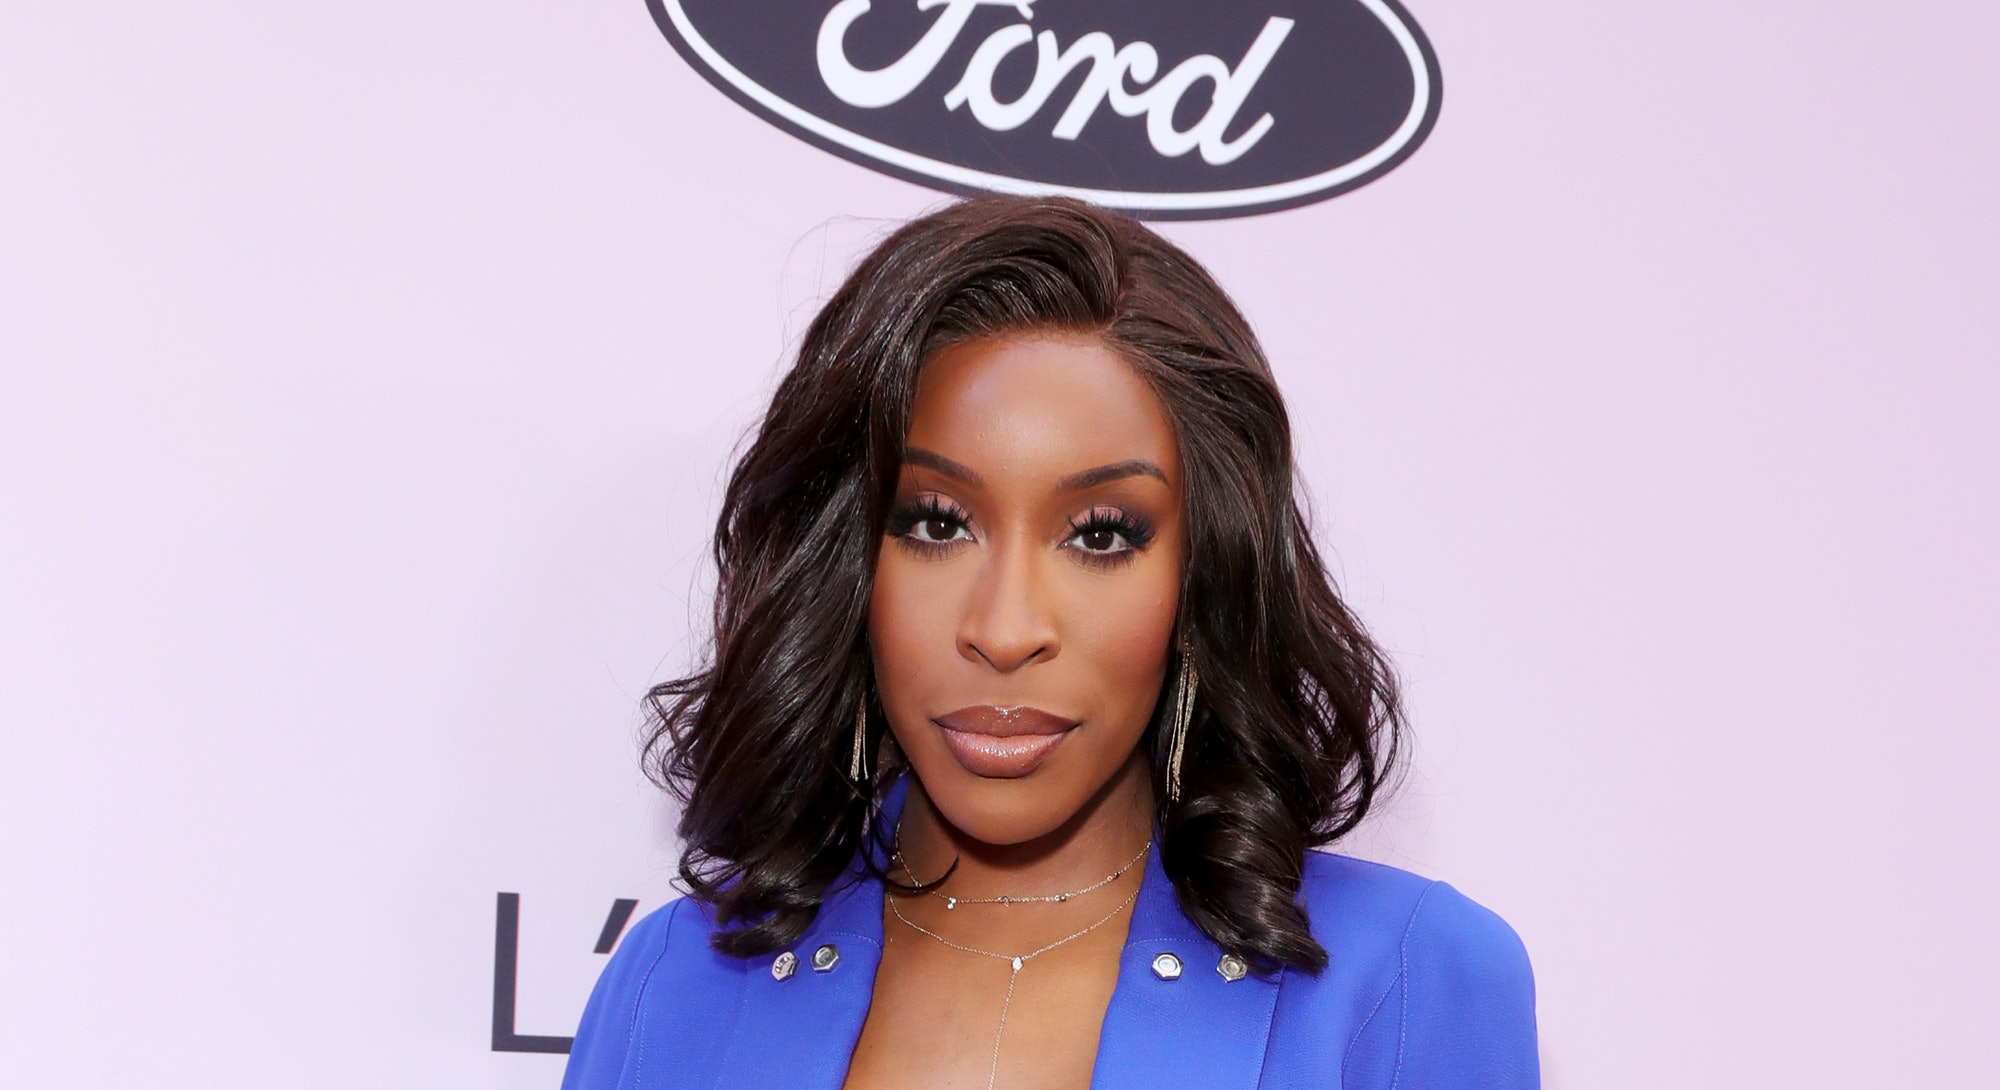 Jackie Aina on the red carpet in a blue dress with plunging neckline.